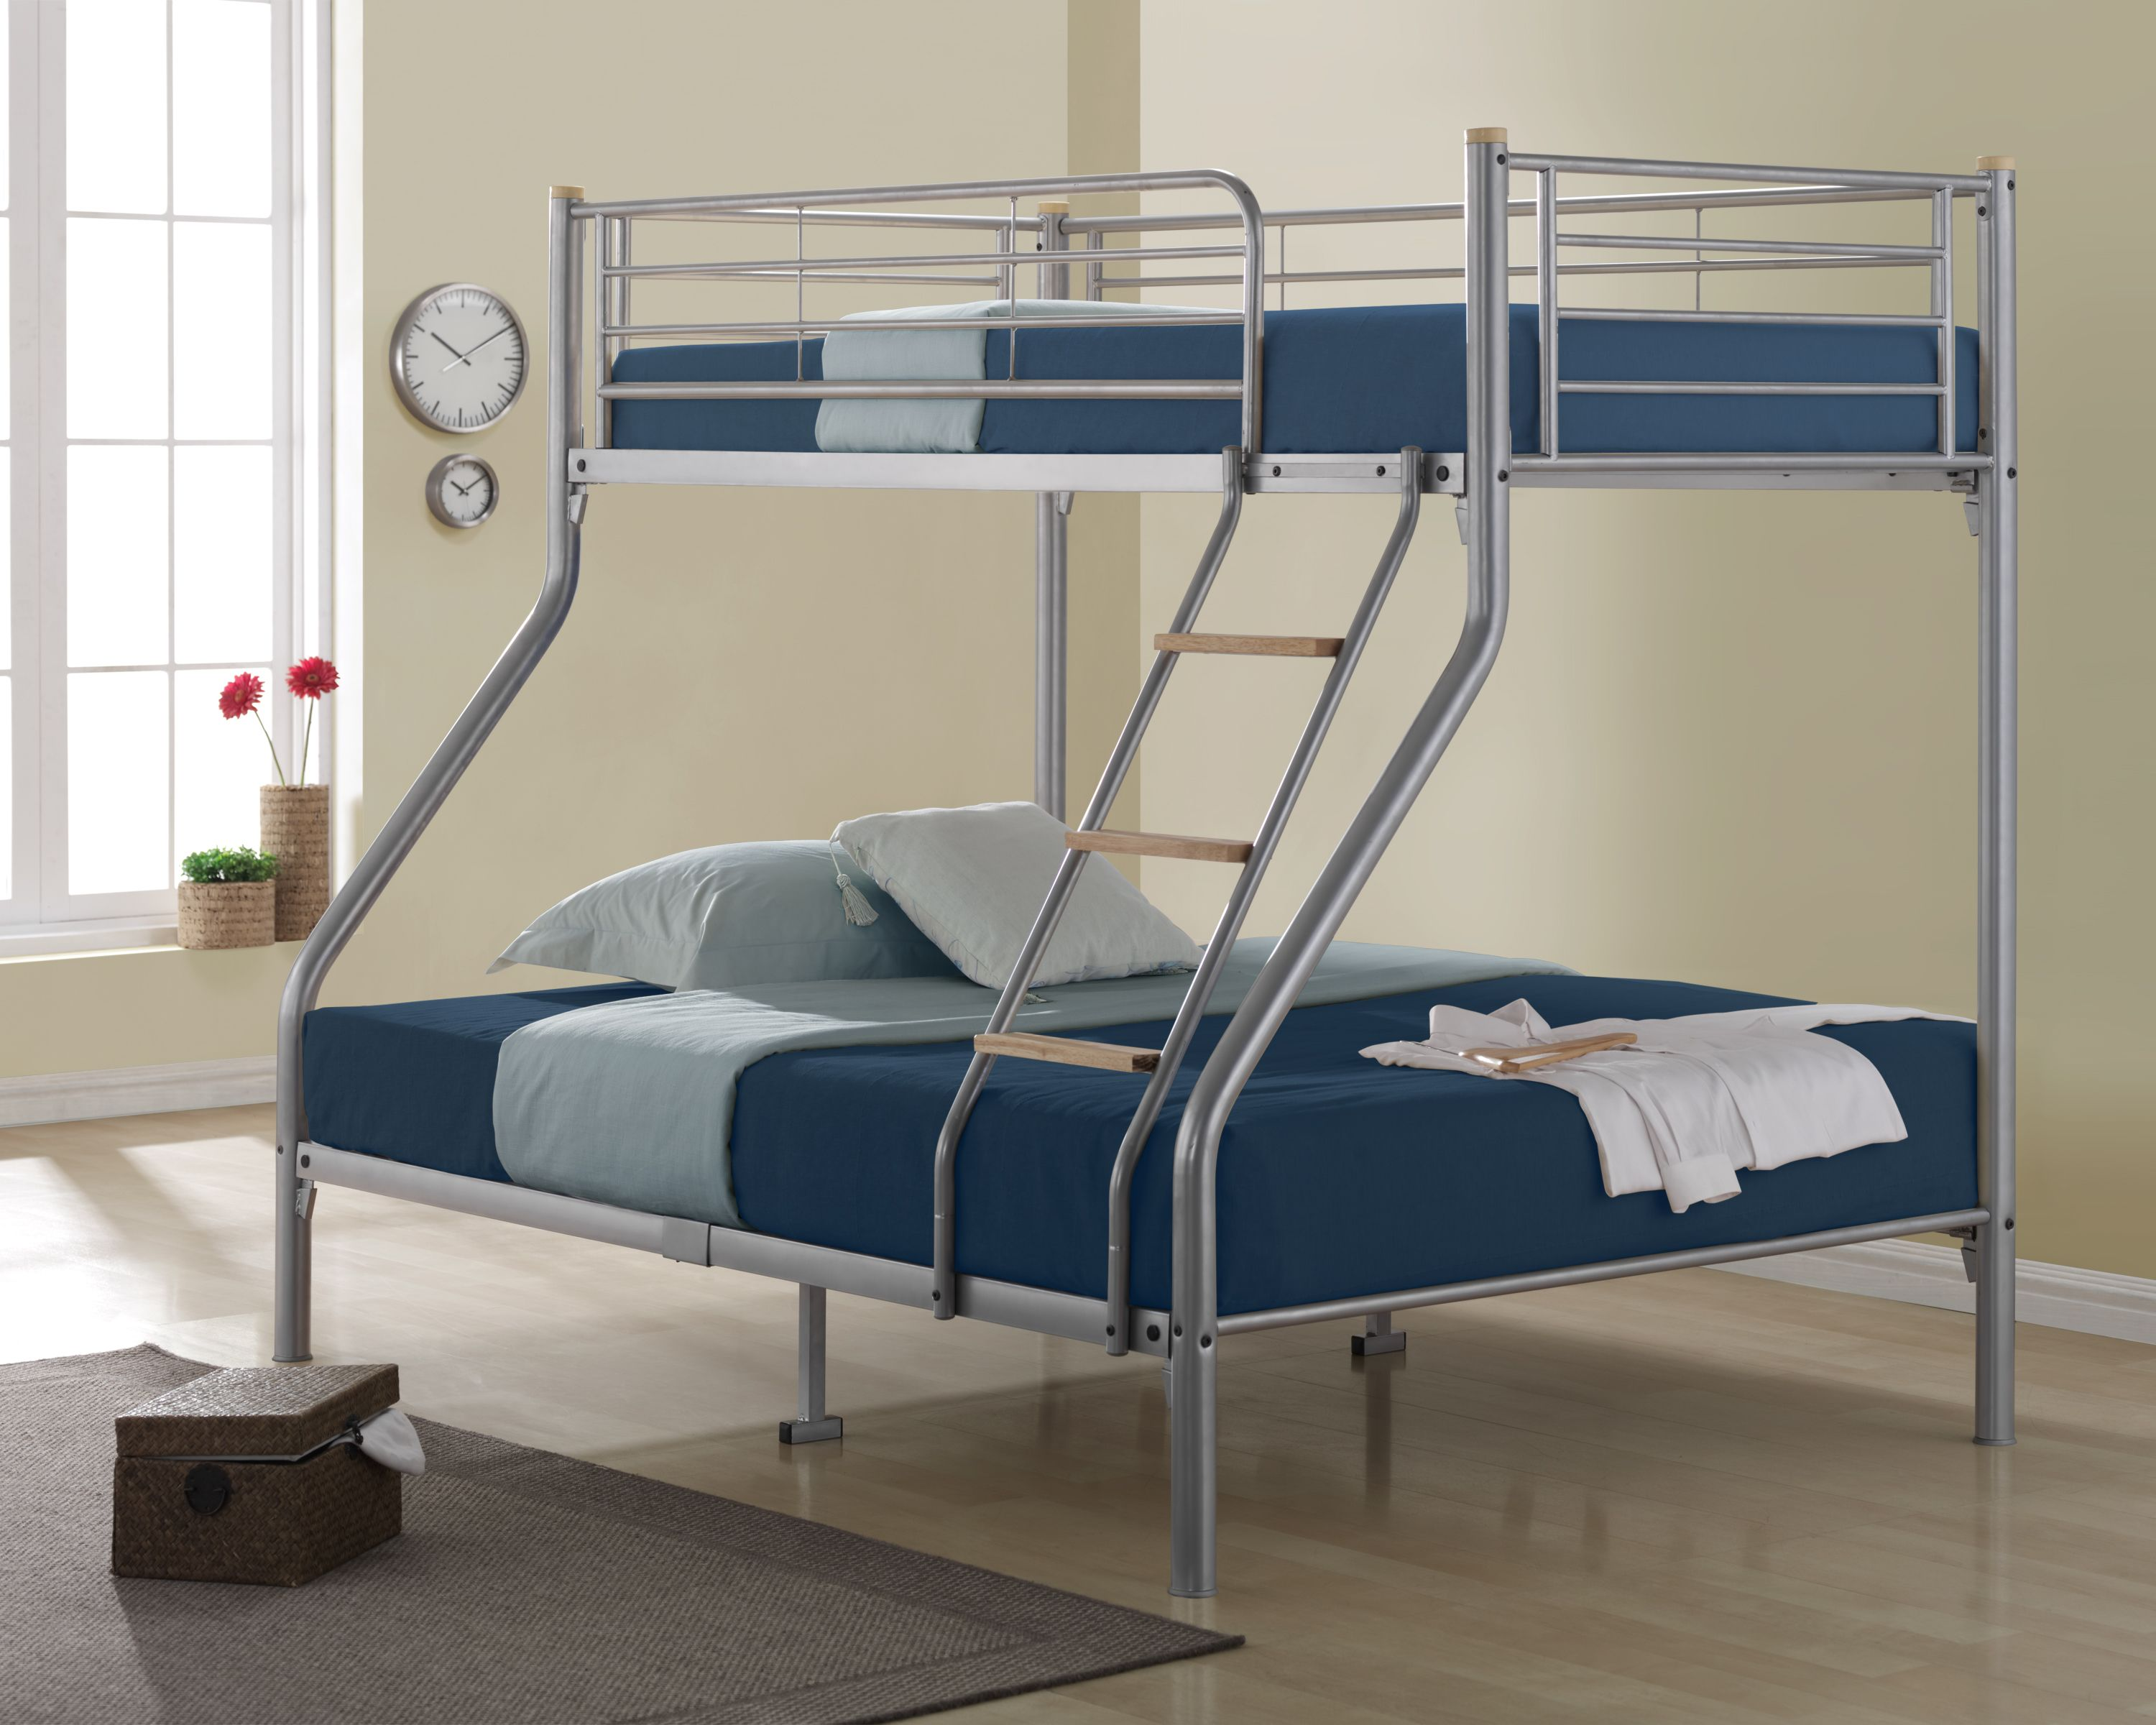 This Bonsoni Triple Sleeper Nexus Bunk Bed Frame Silver is